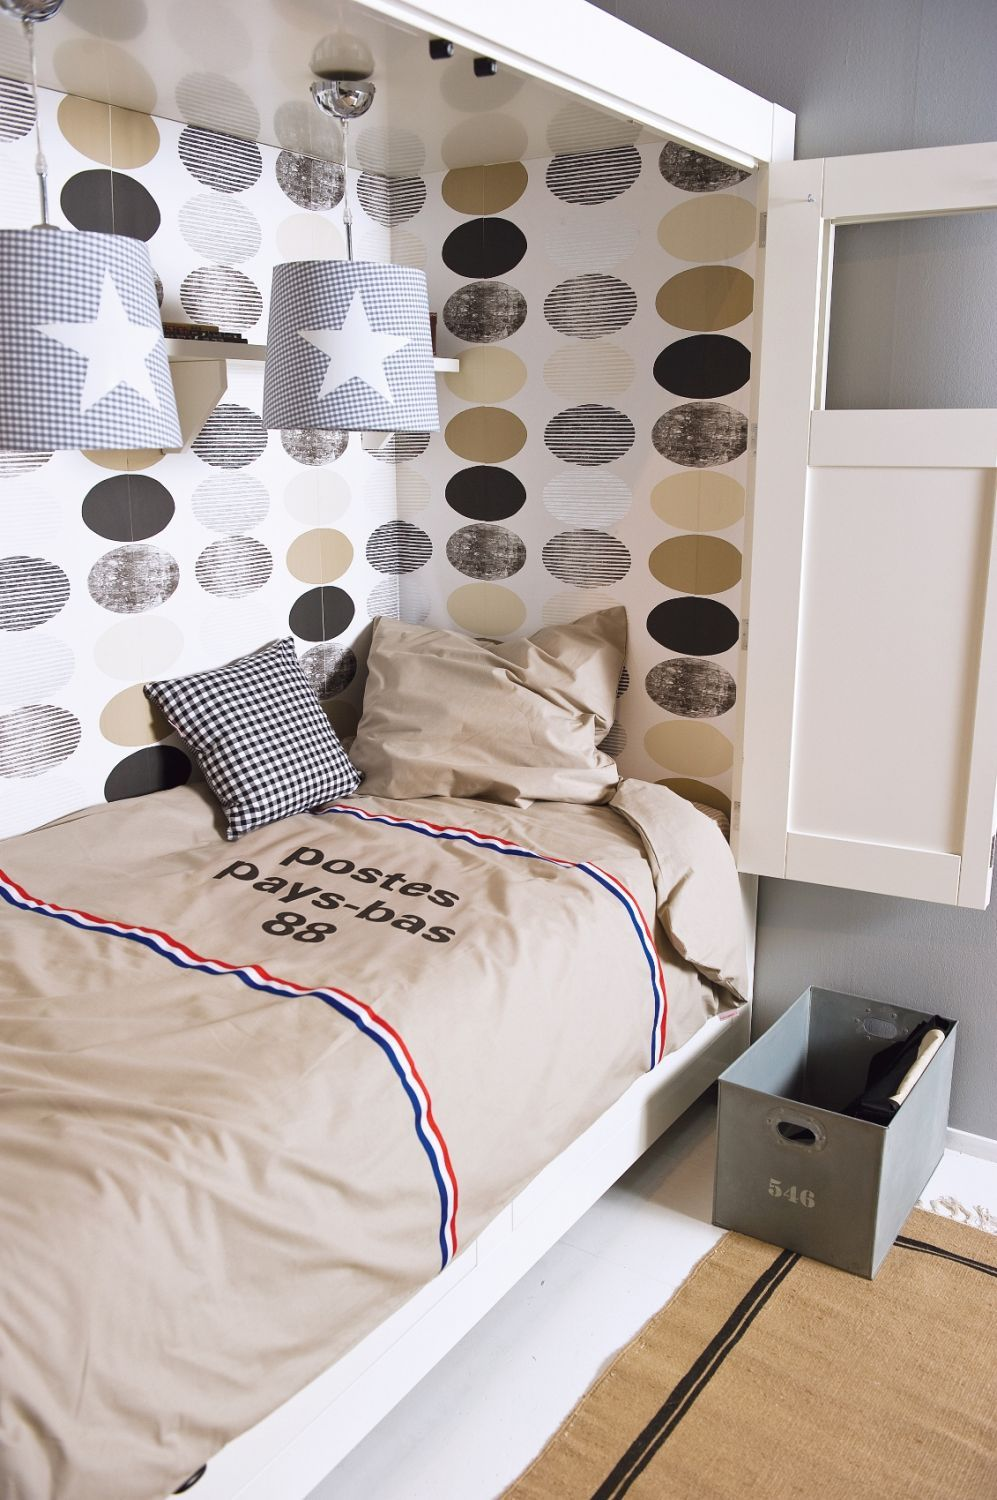 Dekbedovertrek met een #postzak print. Stoer voor de #kinderkamer! | Duvet cover with postbag print for the #kidsroom